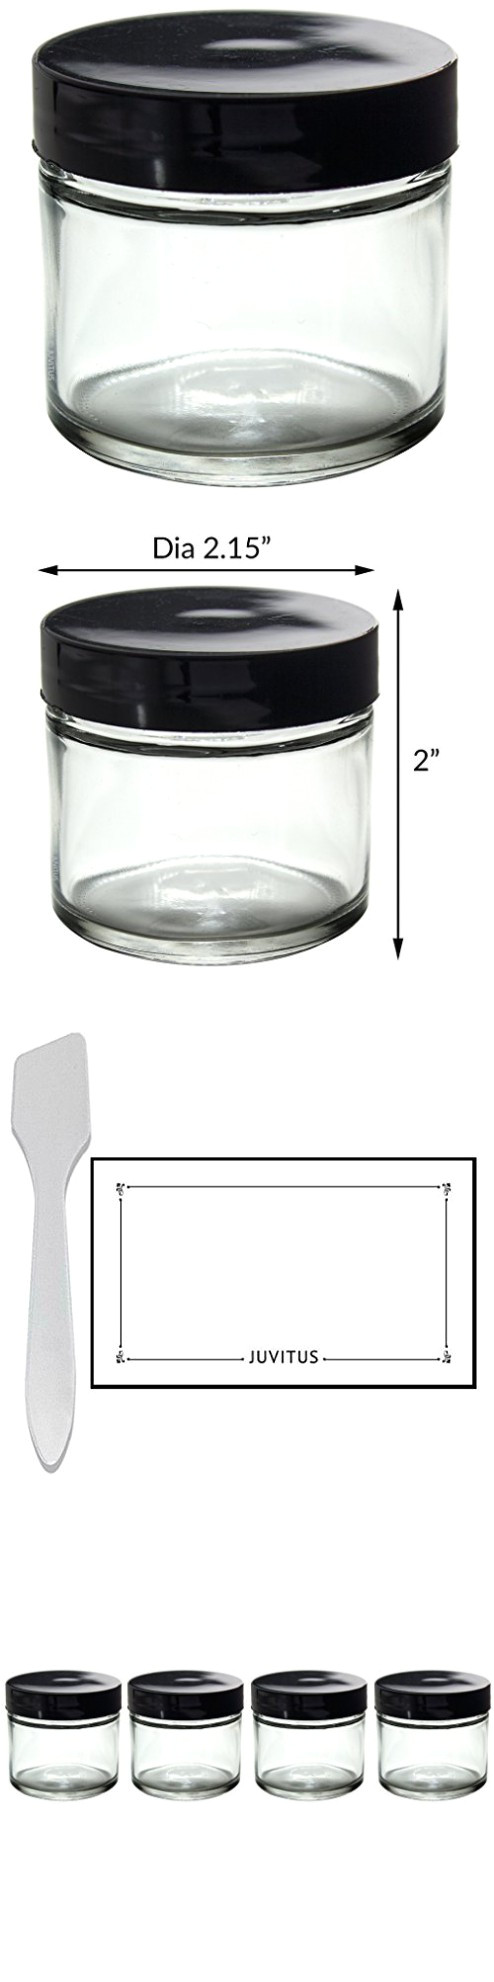 clear thick glass straight sided jars 2 oz 60 ml 4 pack spatulas and labels